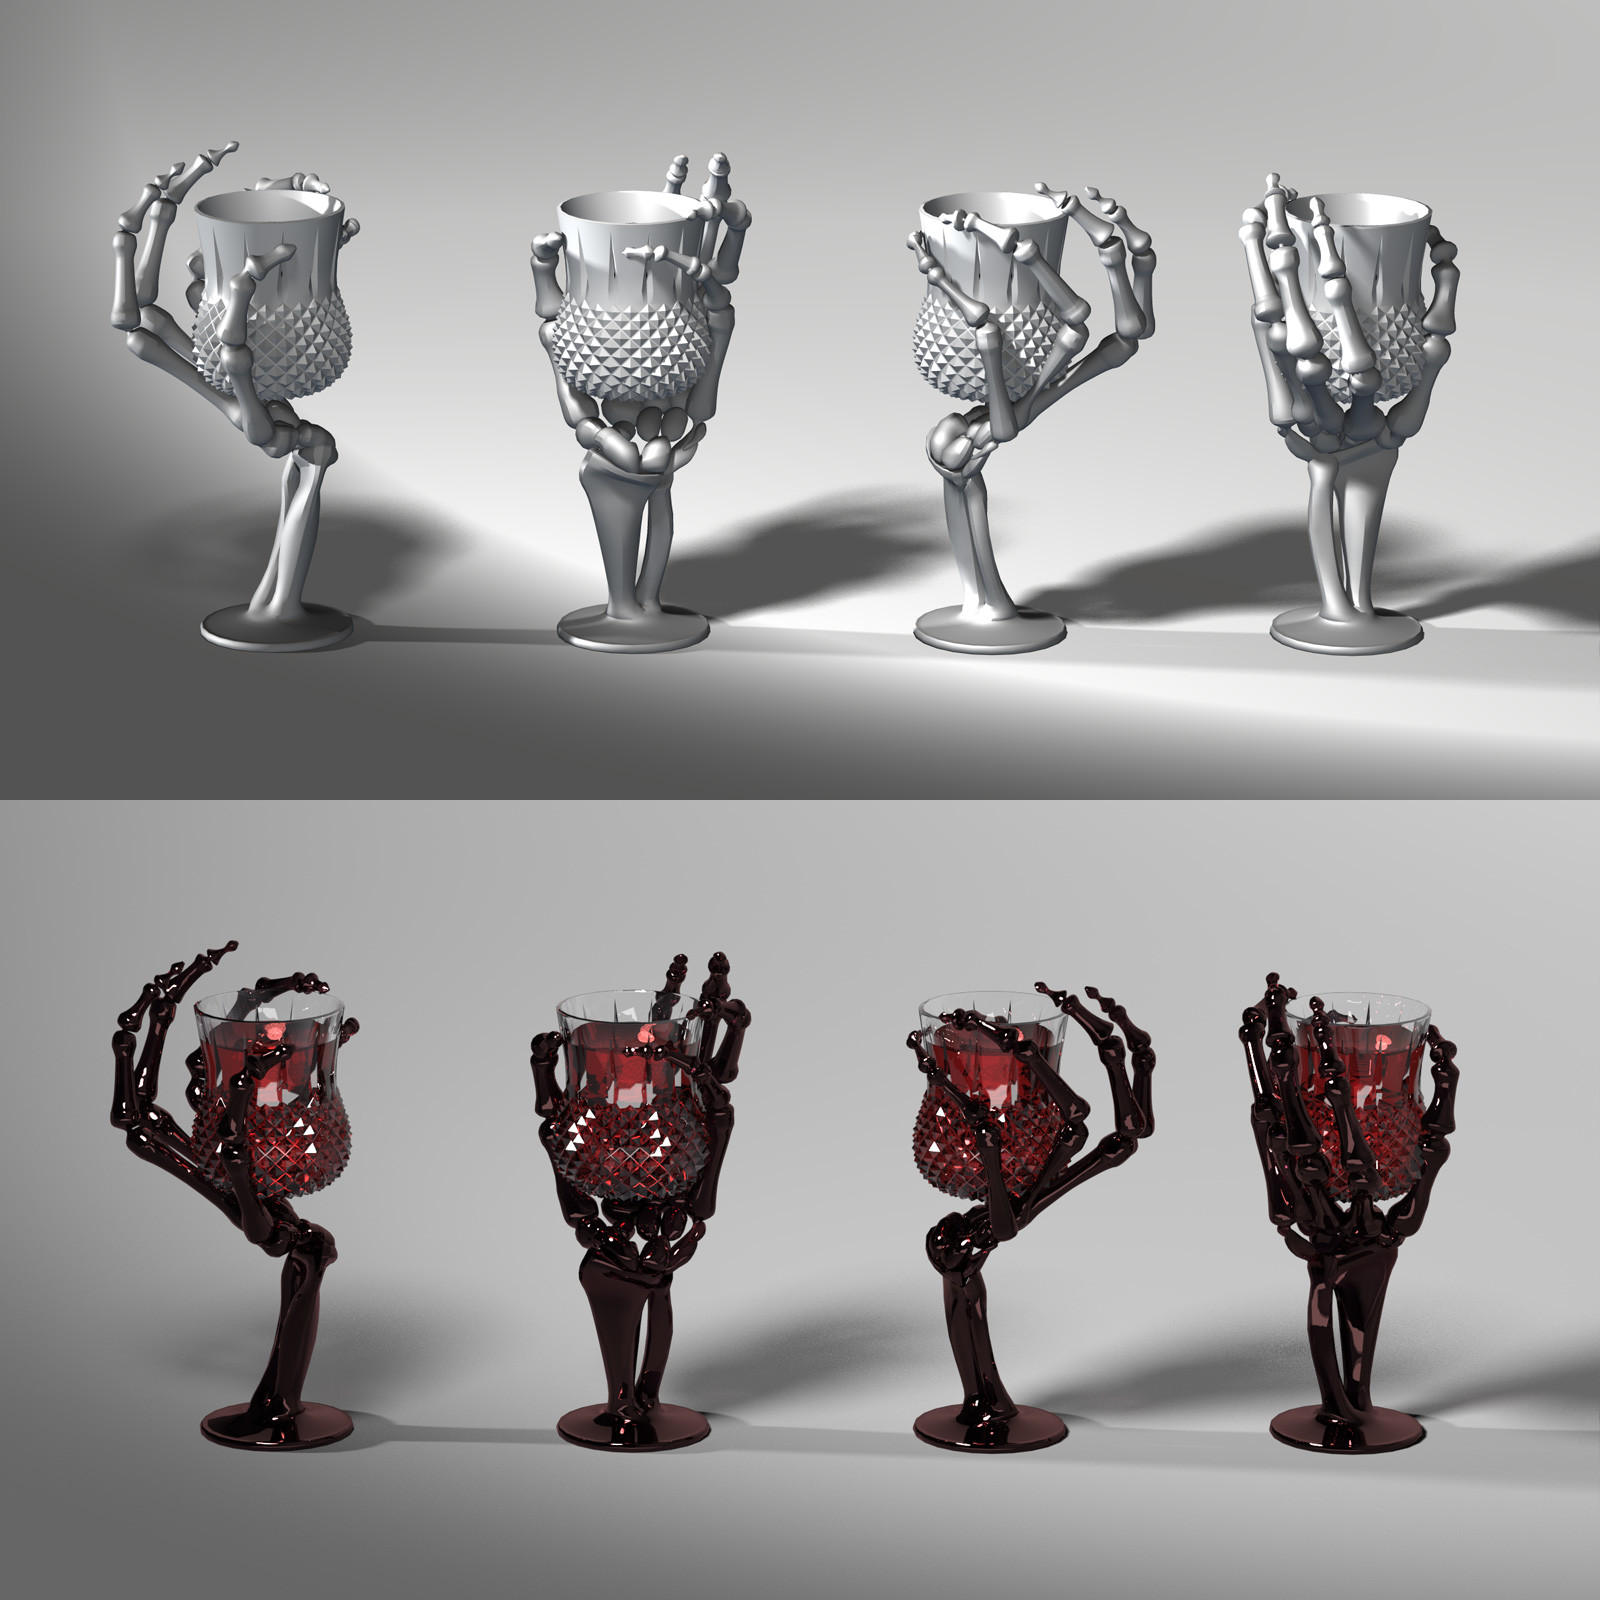 This is a 360 degree turnaround of the tulip-style wine glass, rendered in Blender/Cycles.